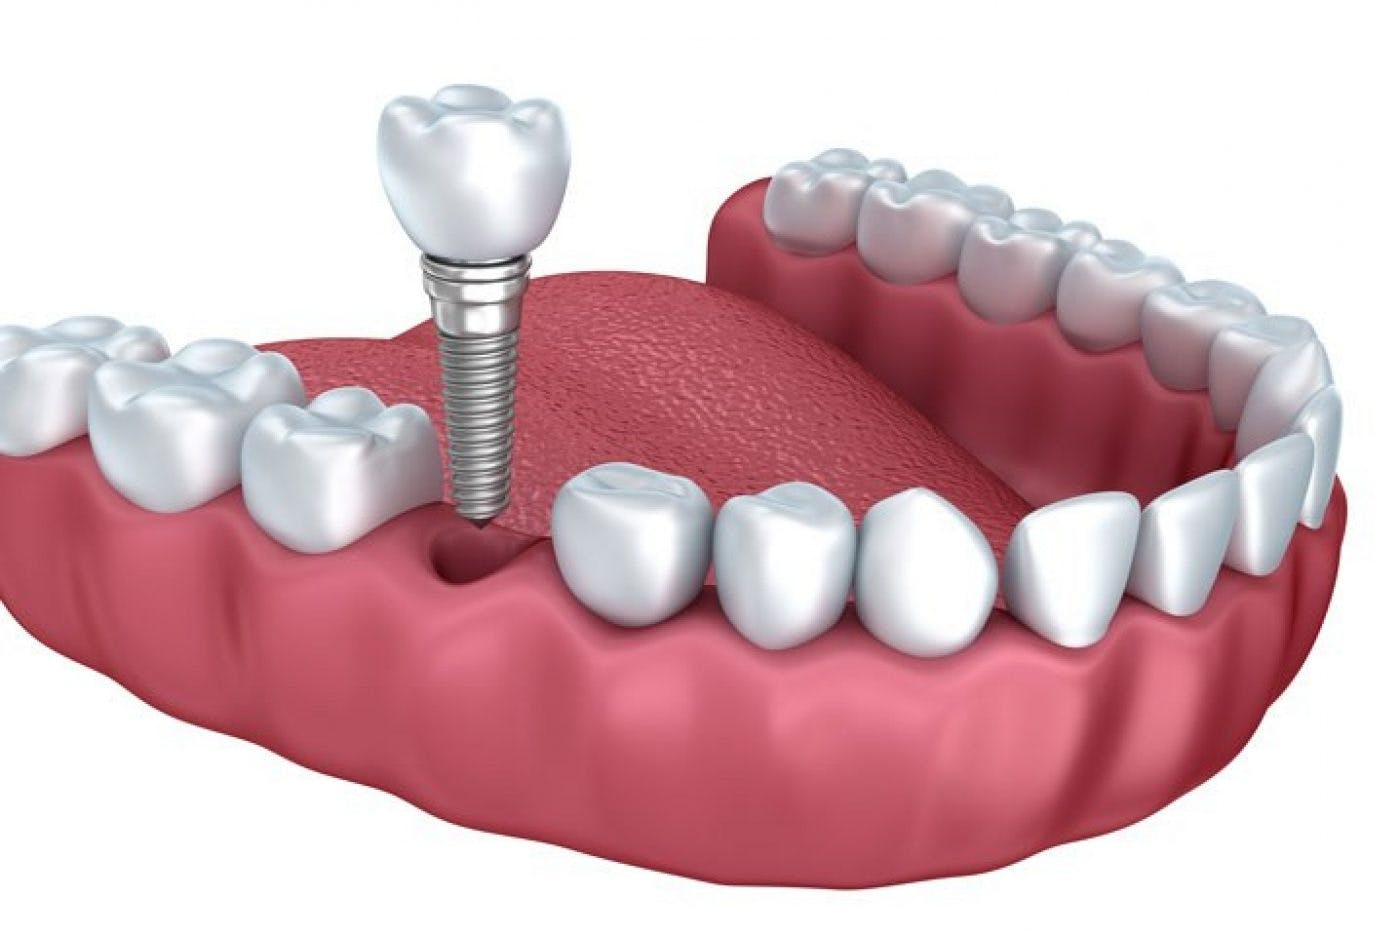 Dental Implants Single Shore Road Dental Belfast